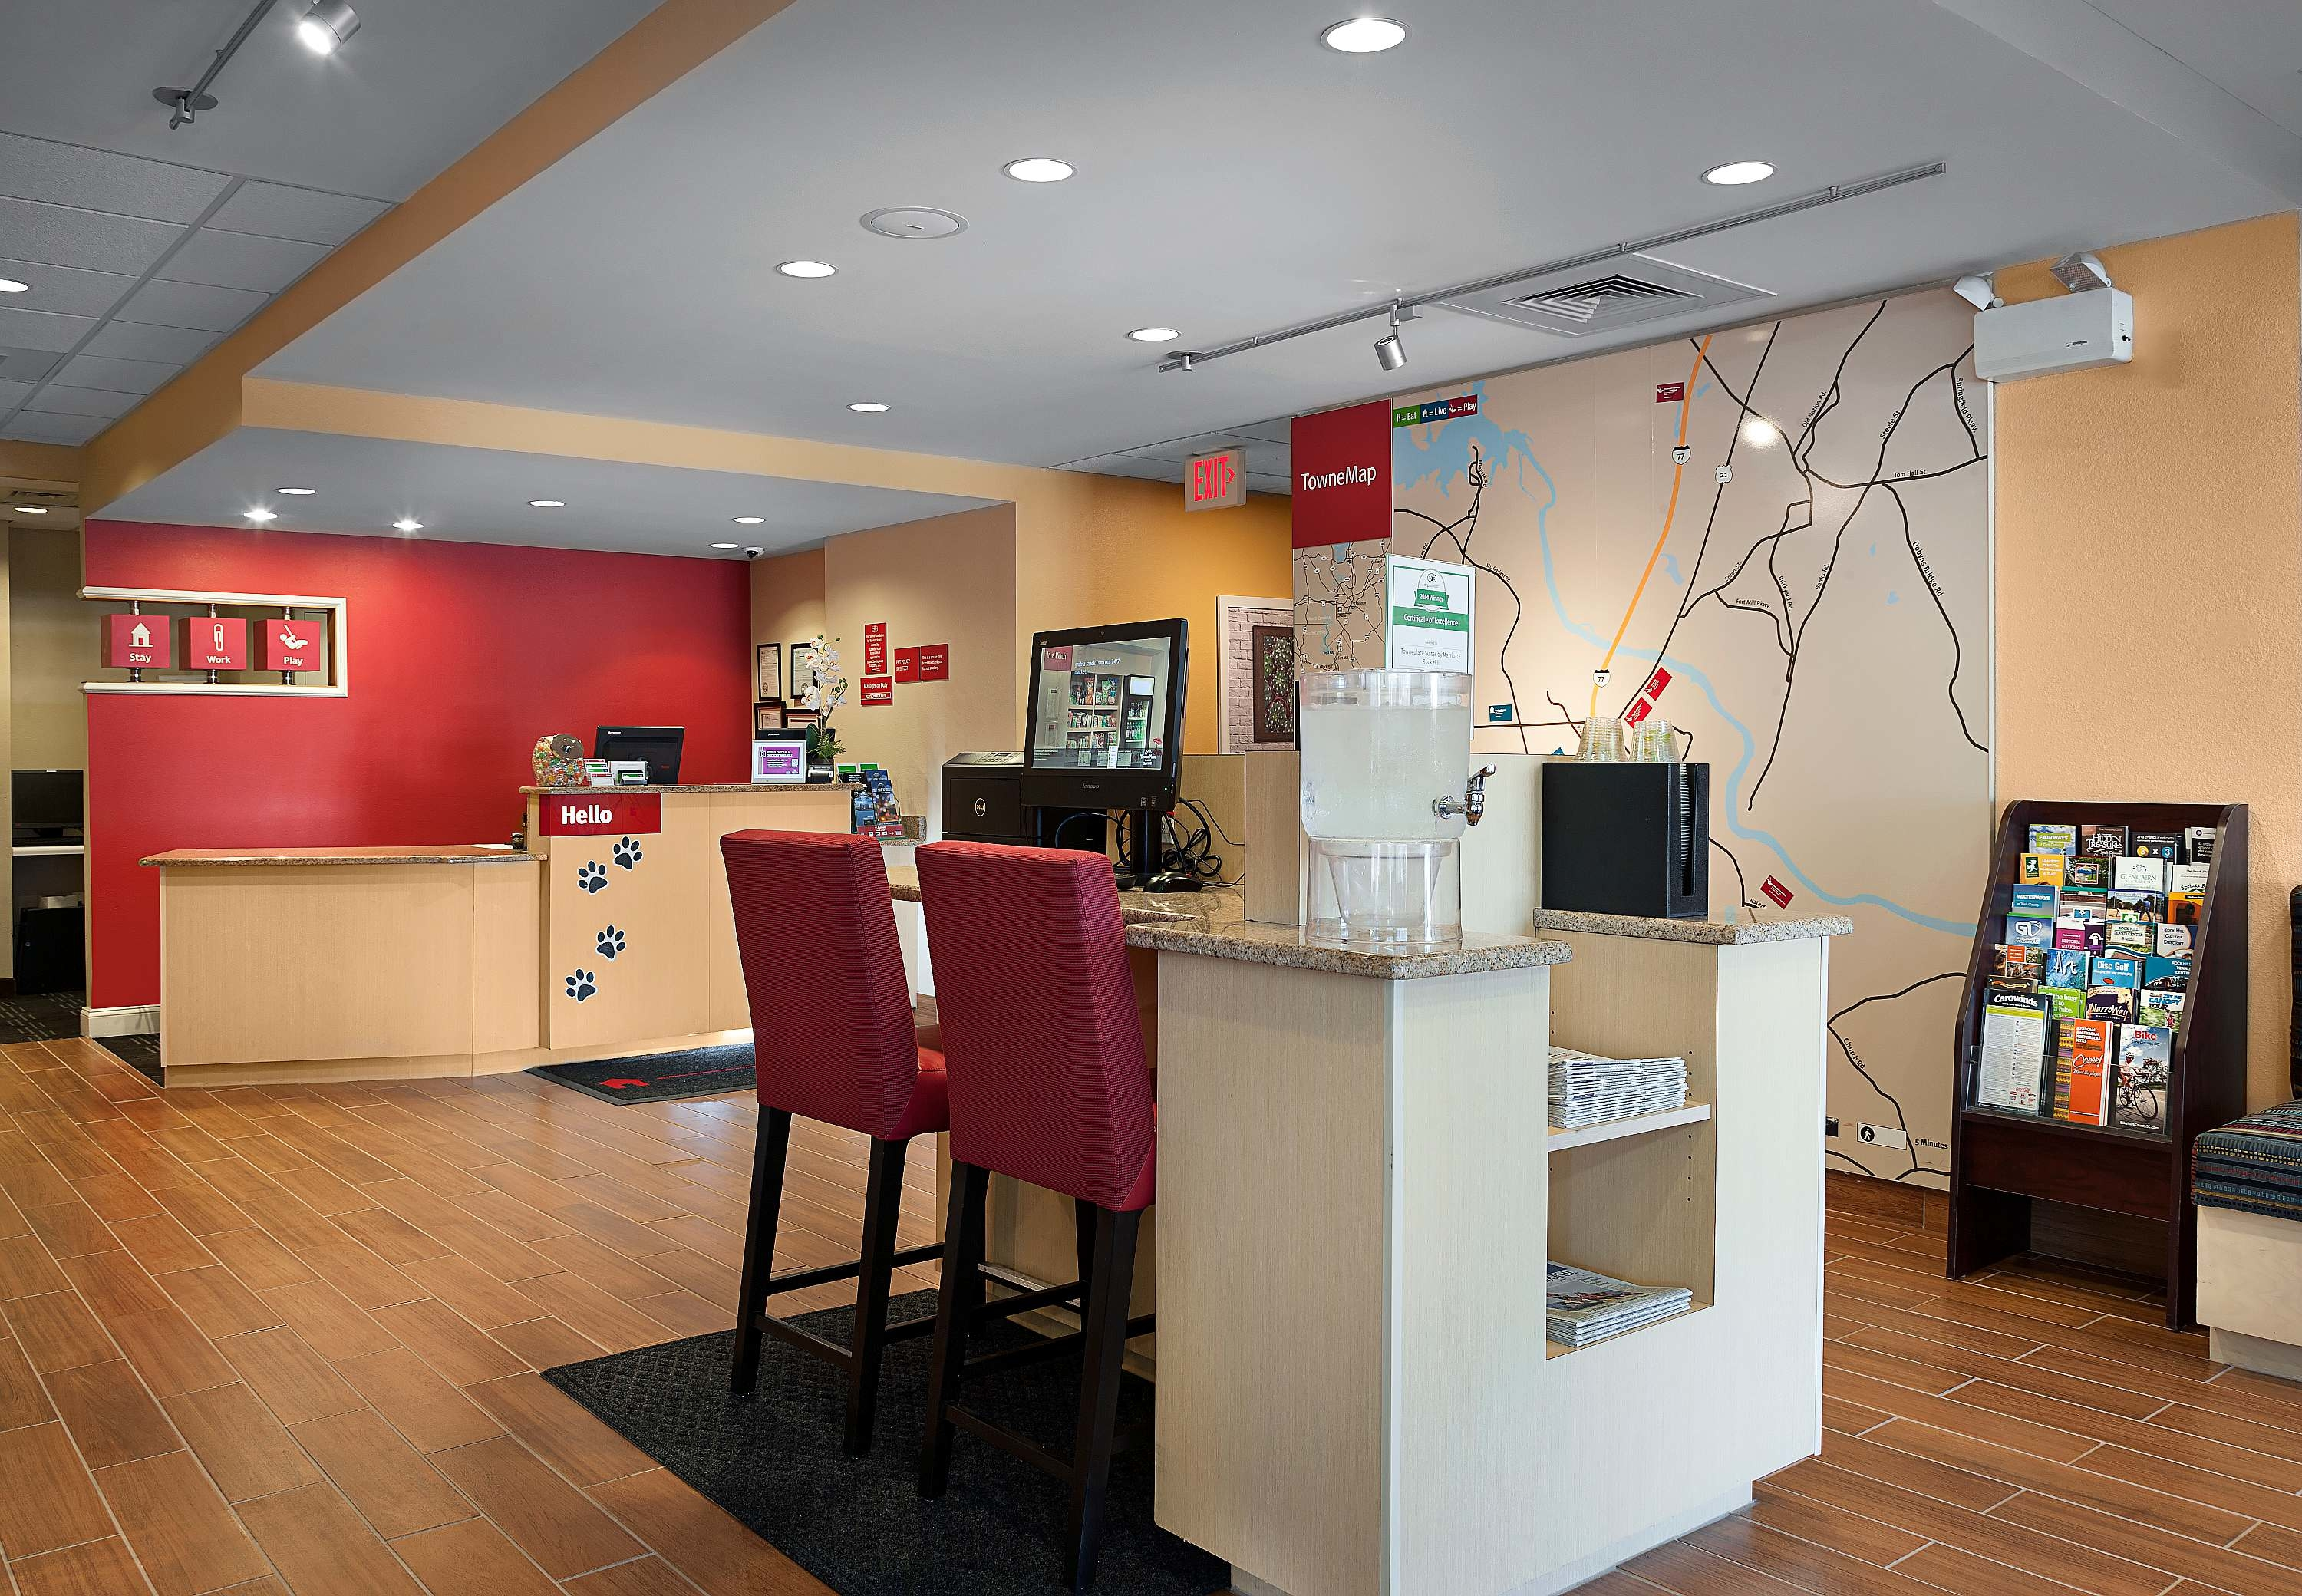 TownePlace Suites by Marriott Rock Hill image 0